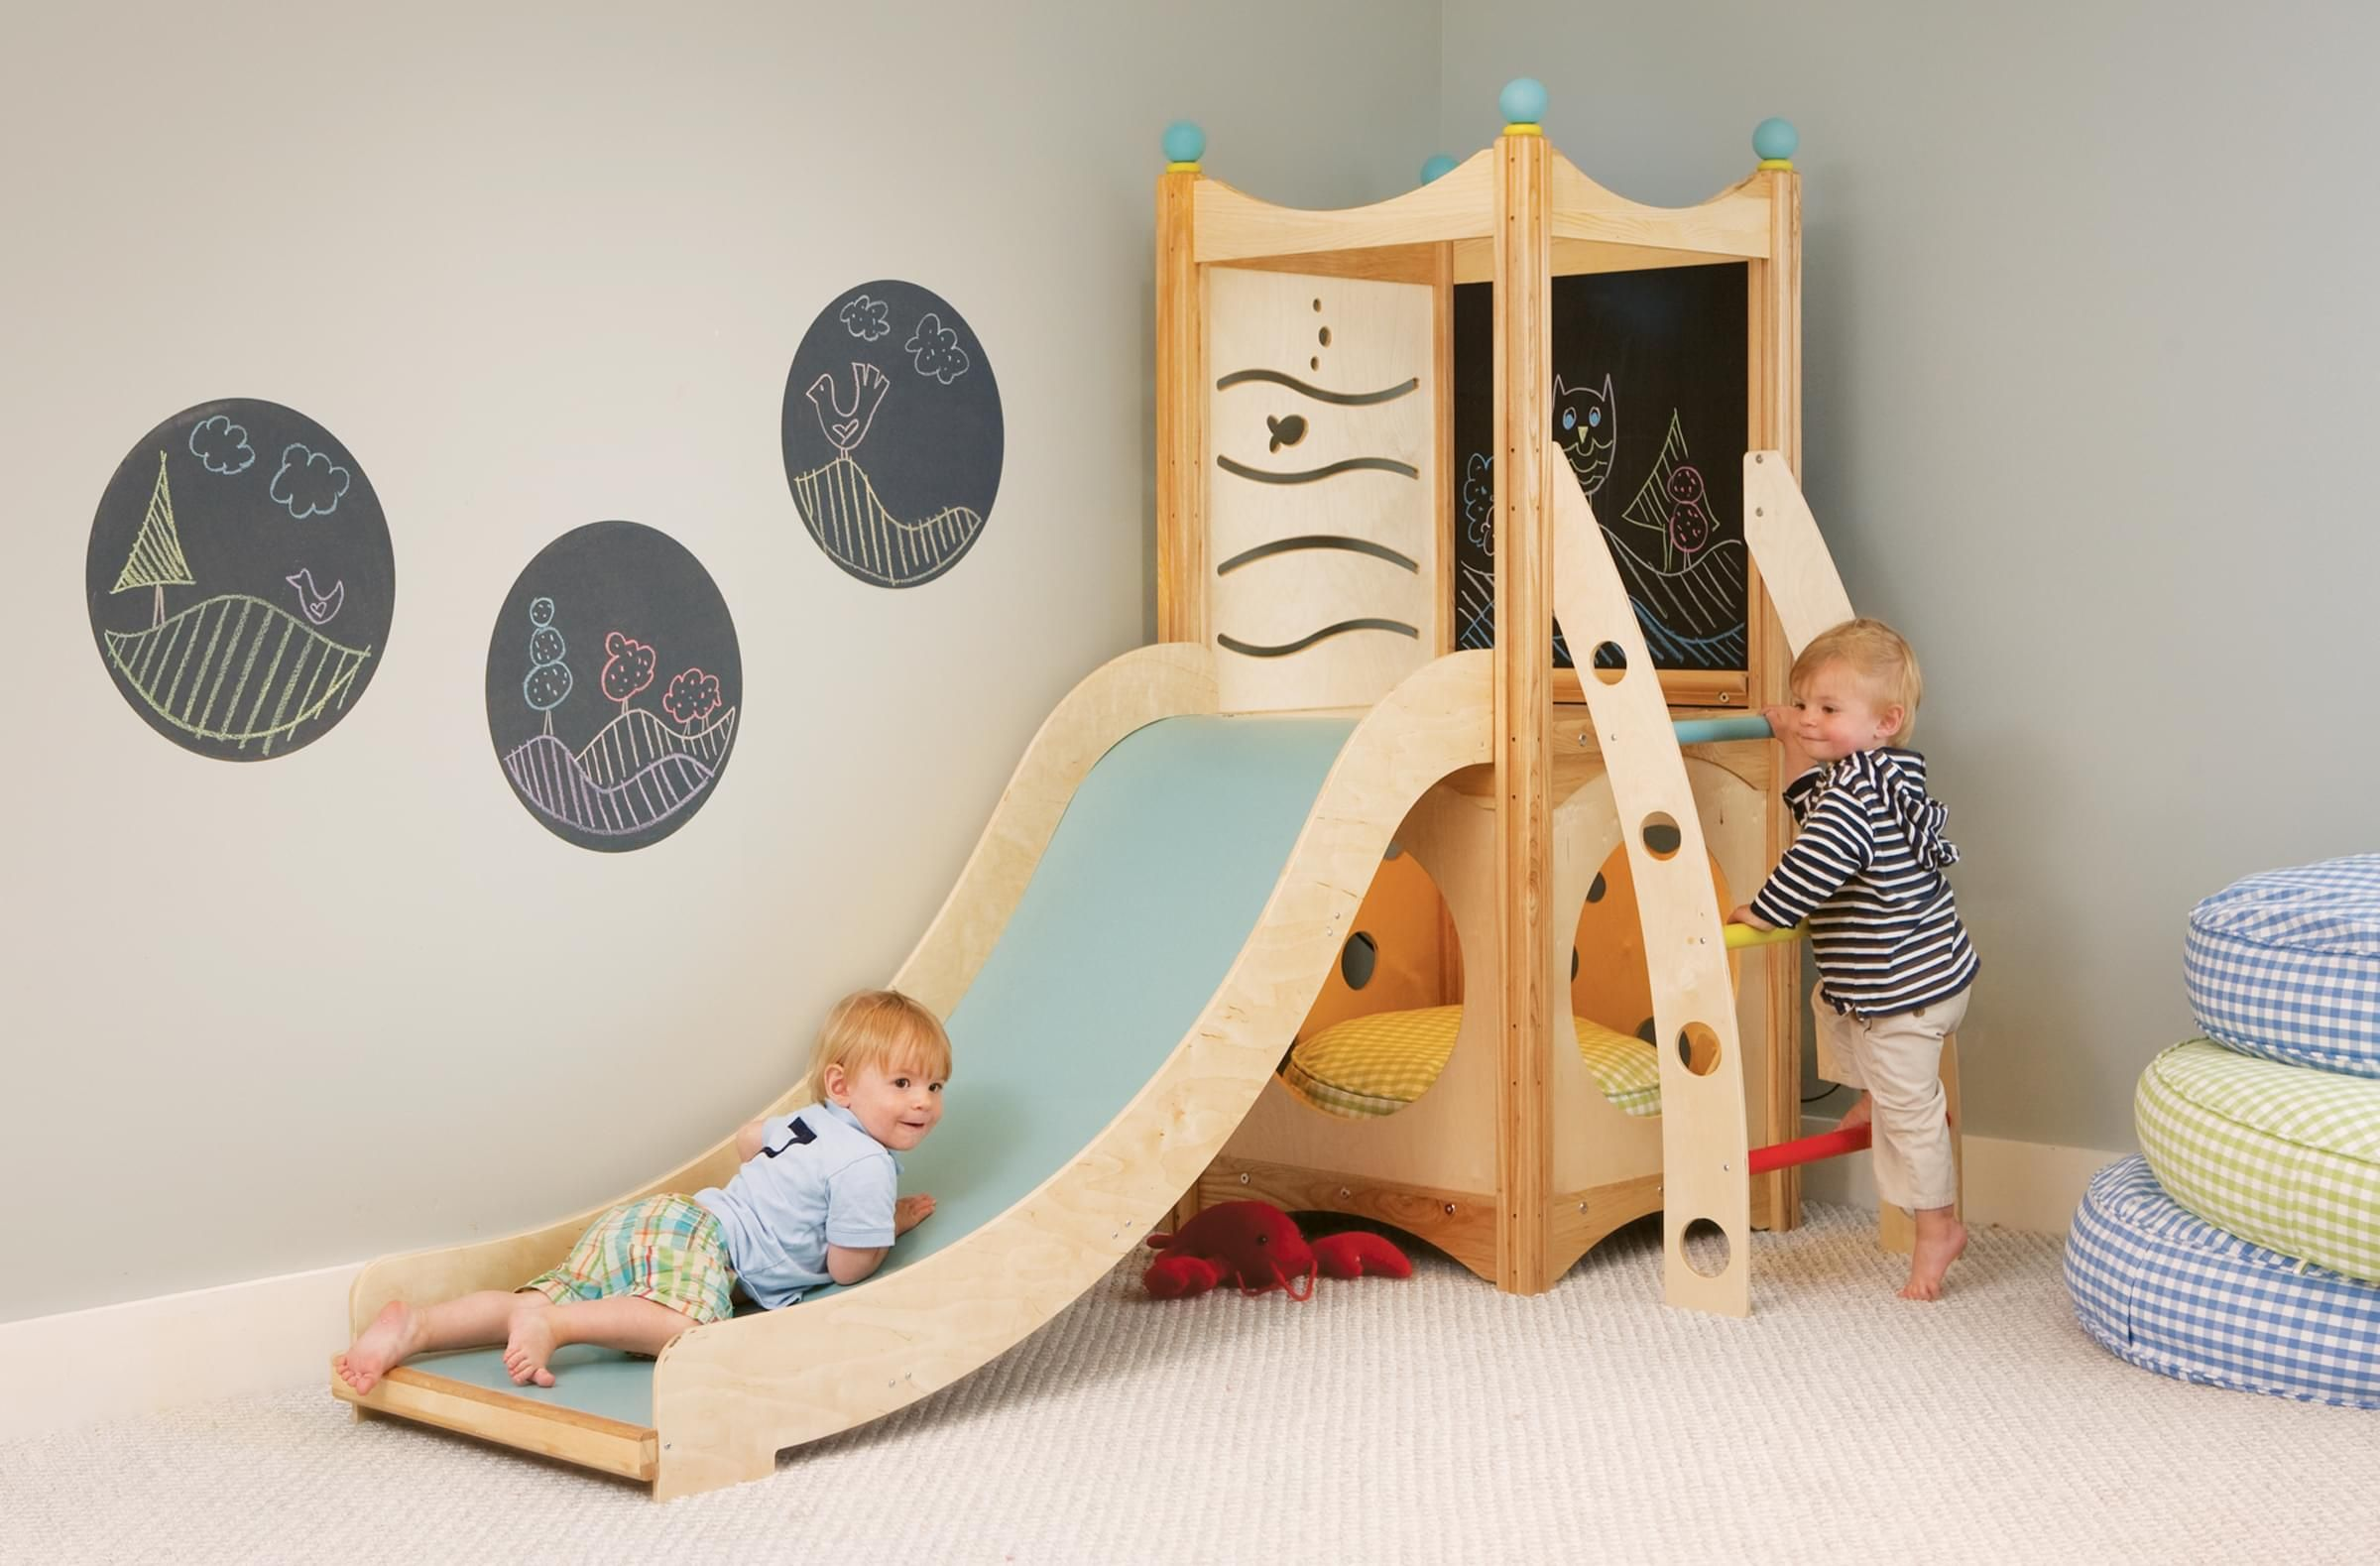 Indoor Playset 112 is from our popular line of indoor playsets, which features slides, climbers, ramps, firepoles, and more